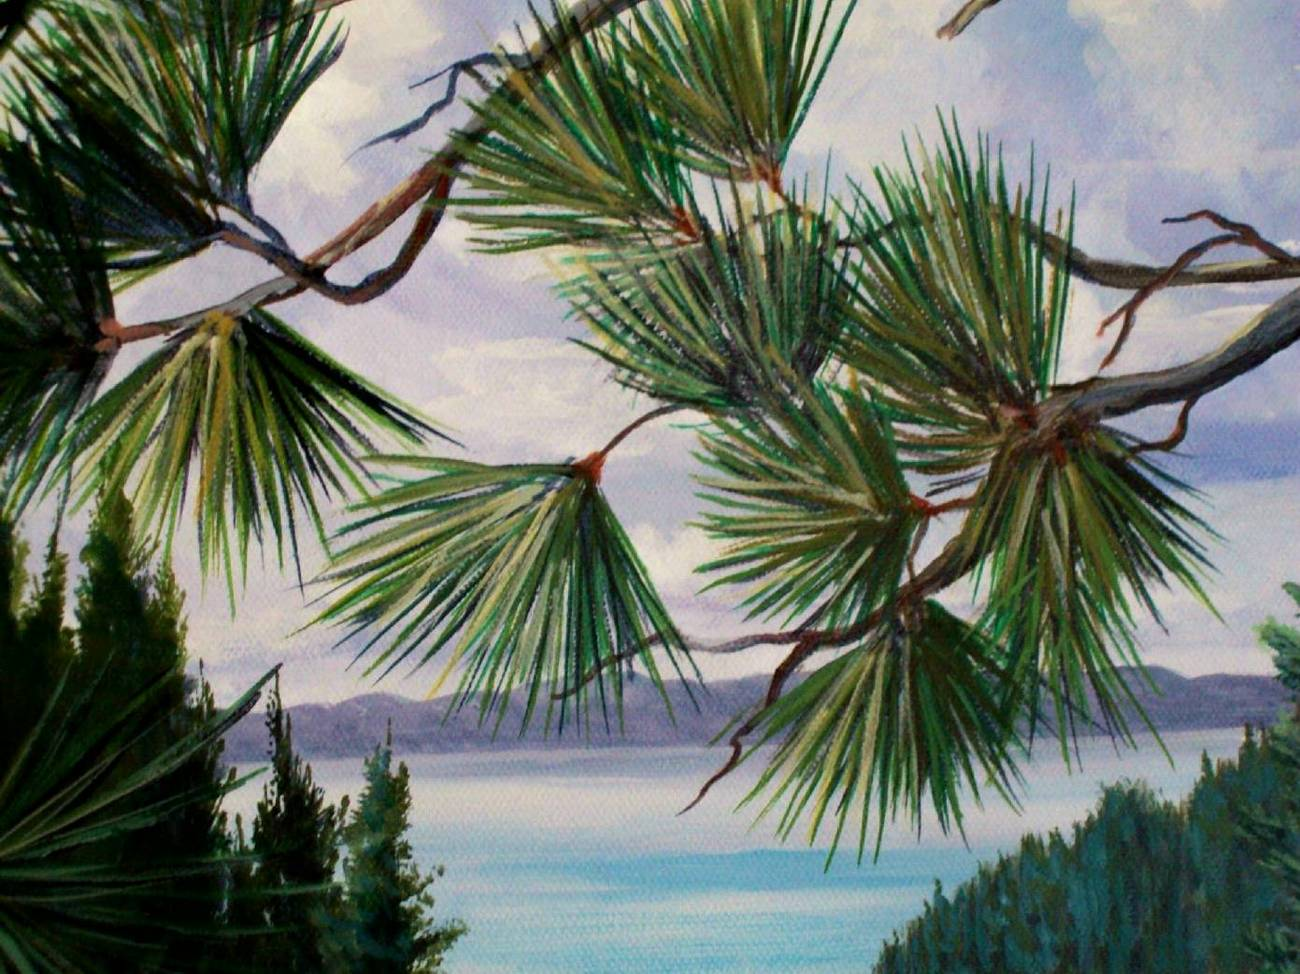 Lake Tahoe Meadow Above Original Realistic Oil Painting on stretched canvas